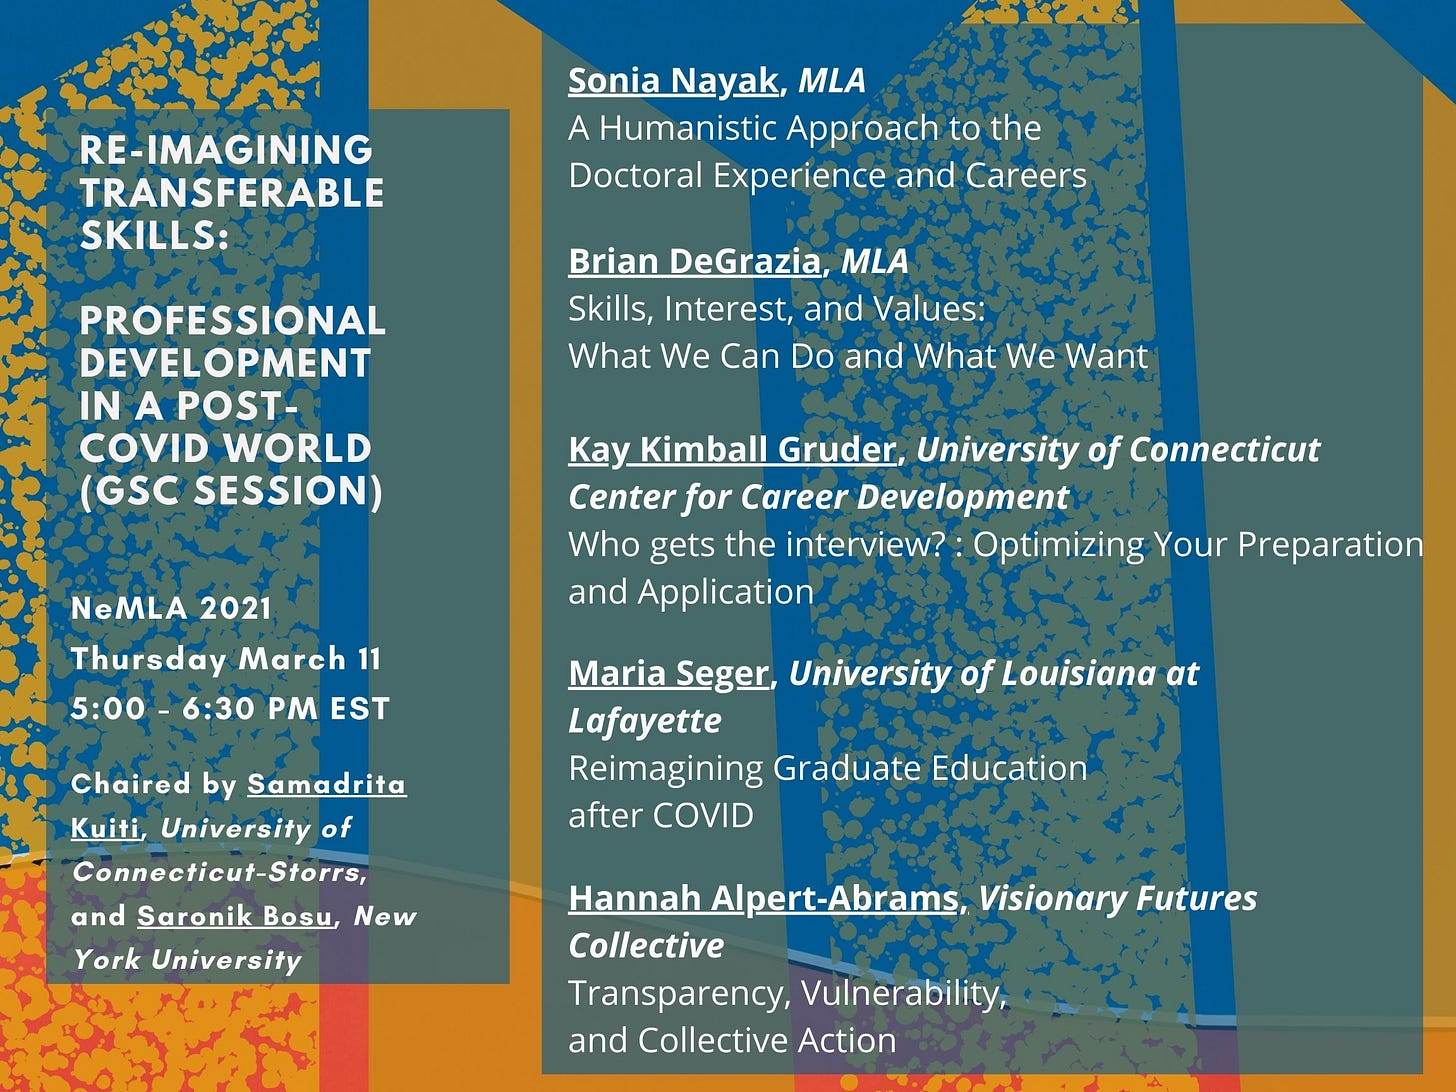 Advertisement for a conference panel: Reimagining Transferable Skills: Professional Development in a Post-Covid world. NeMLA 2021, Thursday March 11, 5-6:30pm est. Chaired by Samadrita Kuiti, University of Connecticut-Storrs, and Saronik Bosu, New York University. Text is overlaid on a beautiful orange, blue, and red design.